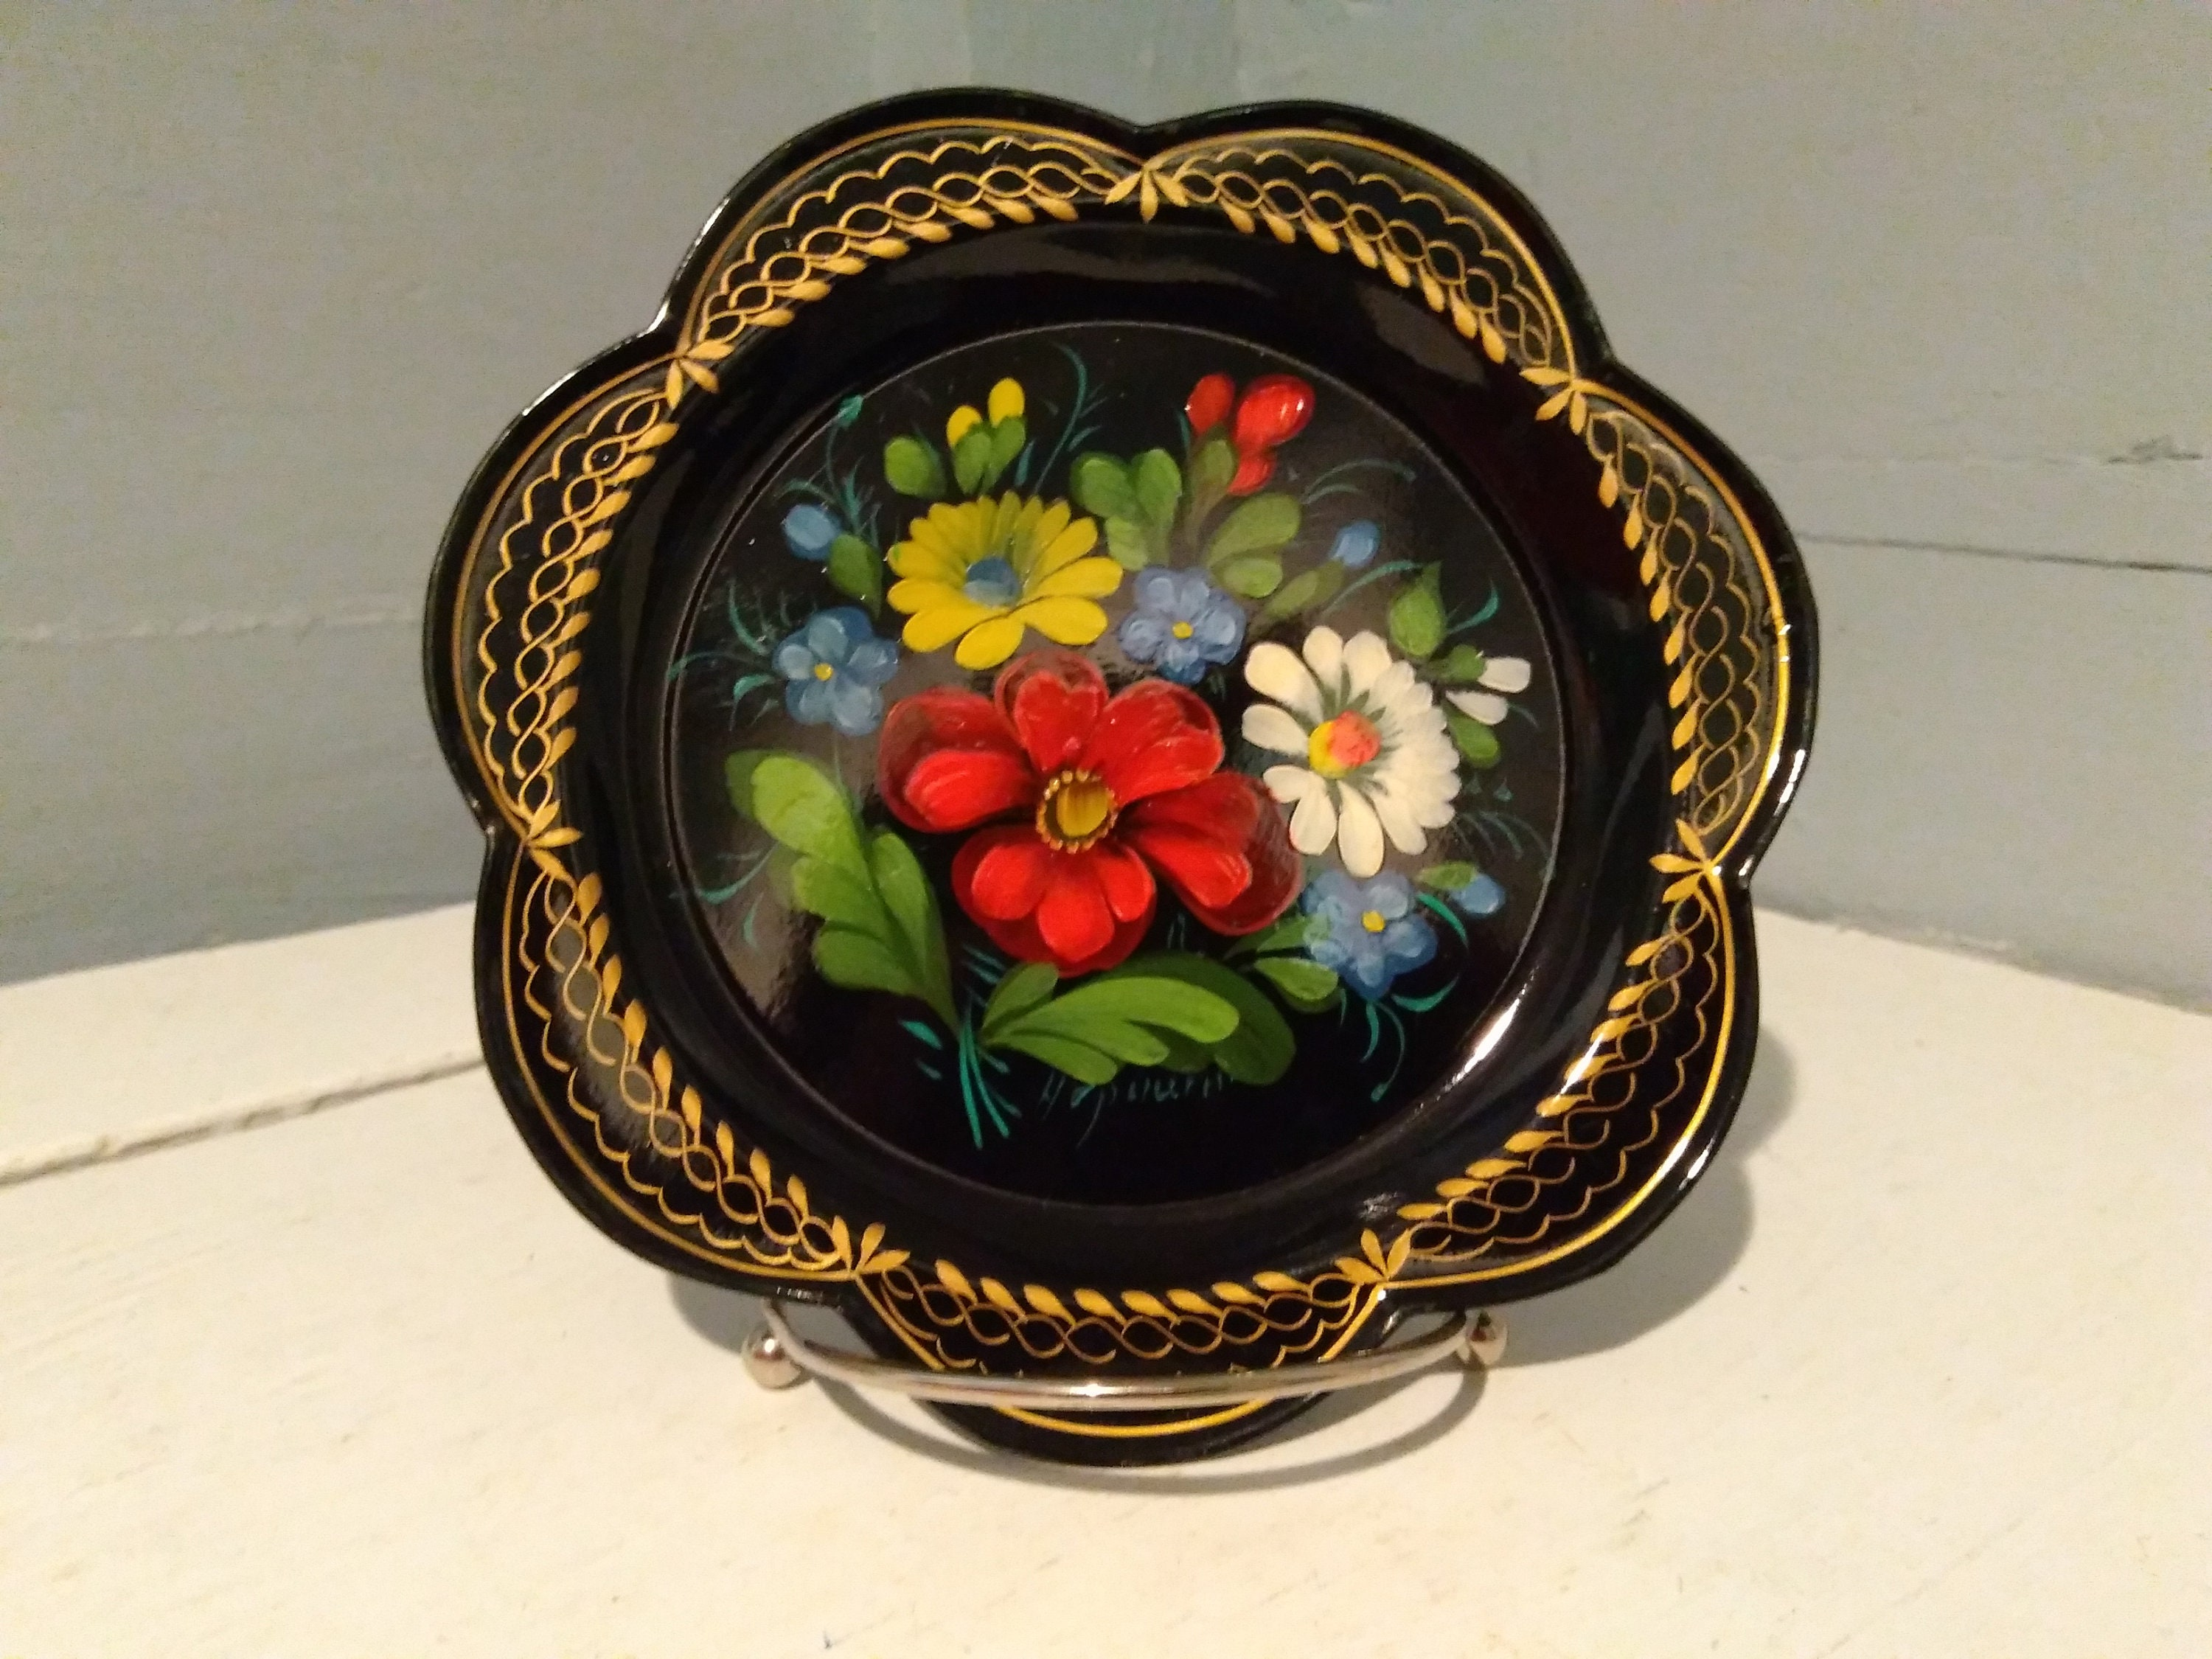 Vintage Russian Metal Toleware Serving Tray Drink Tray Decorative Tray Black Lacquered Hand Painted Metal Tray Rhymeswithdaughter